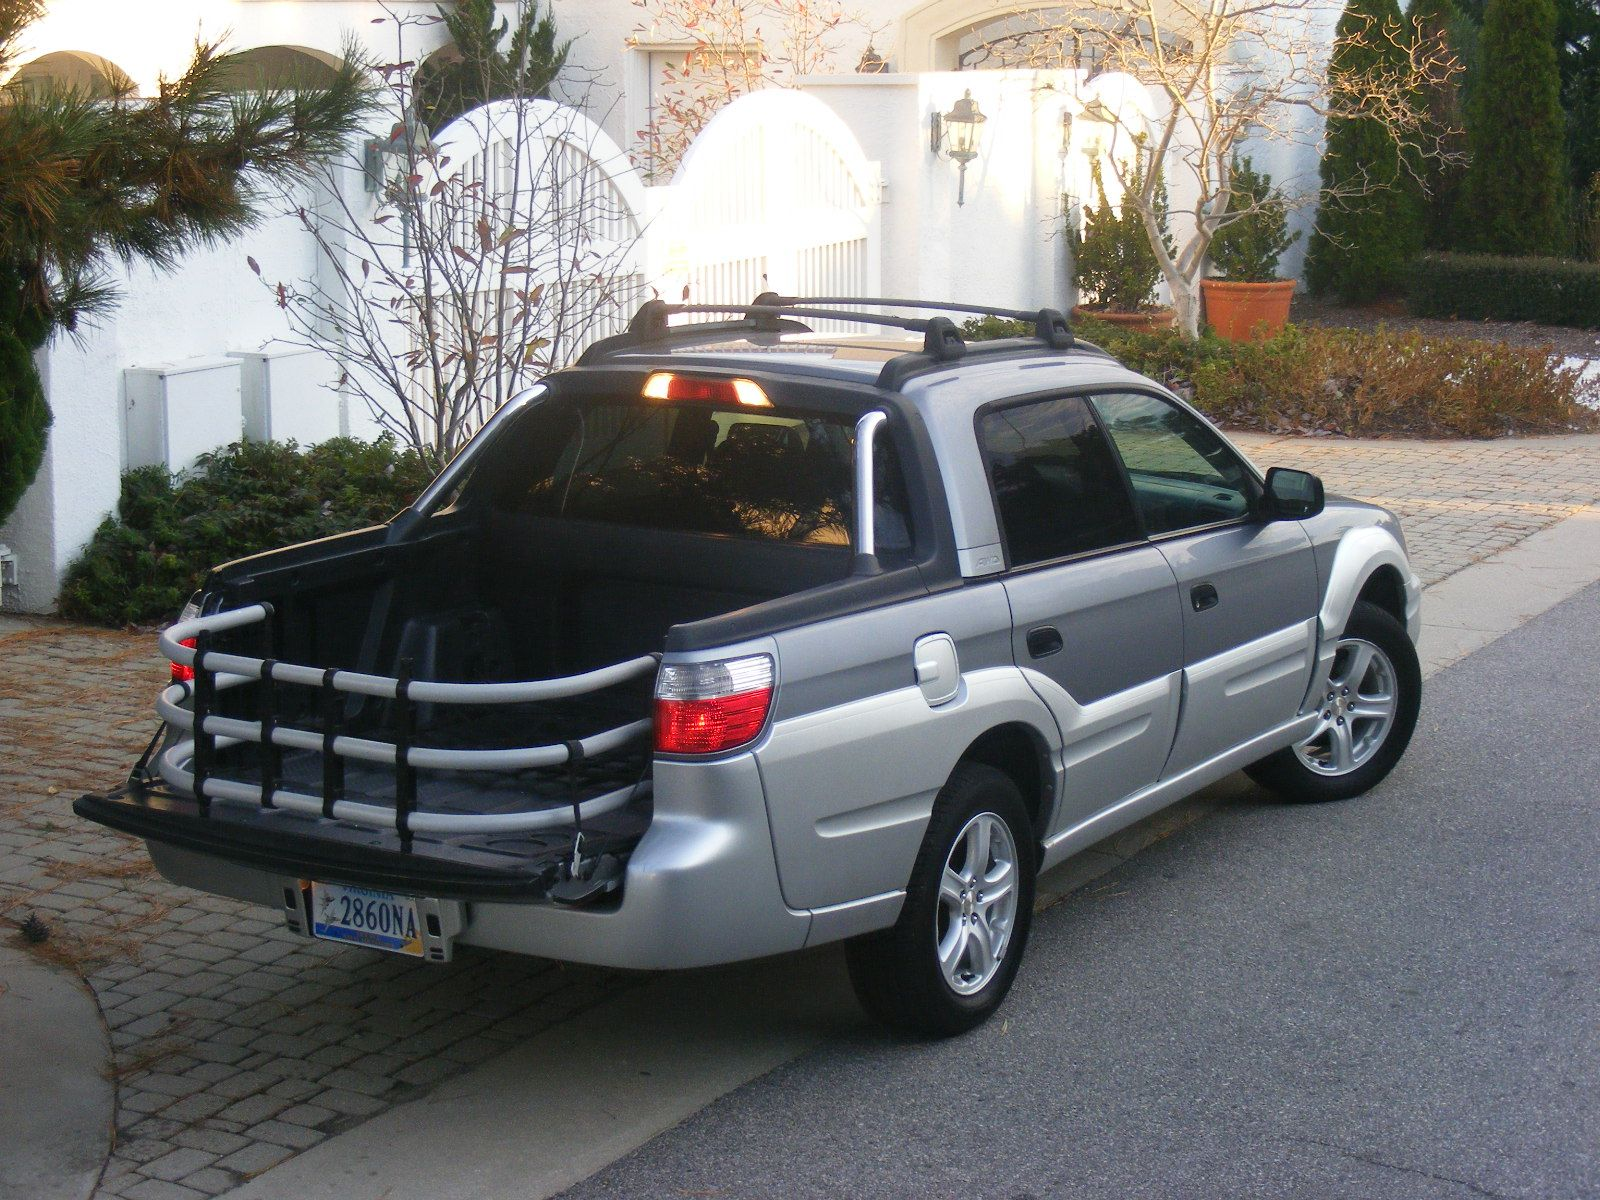 2005 subaru baja turbo.looks just like my new car!!! | subaru